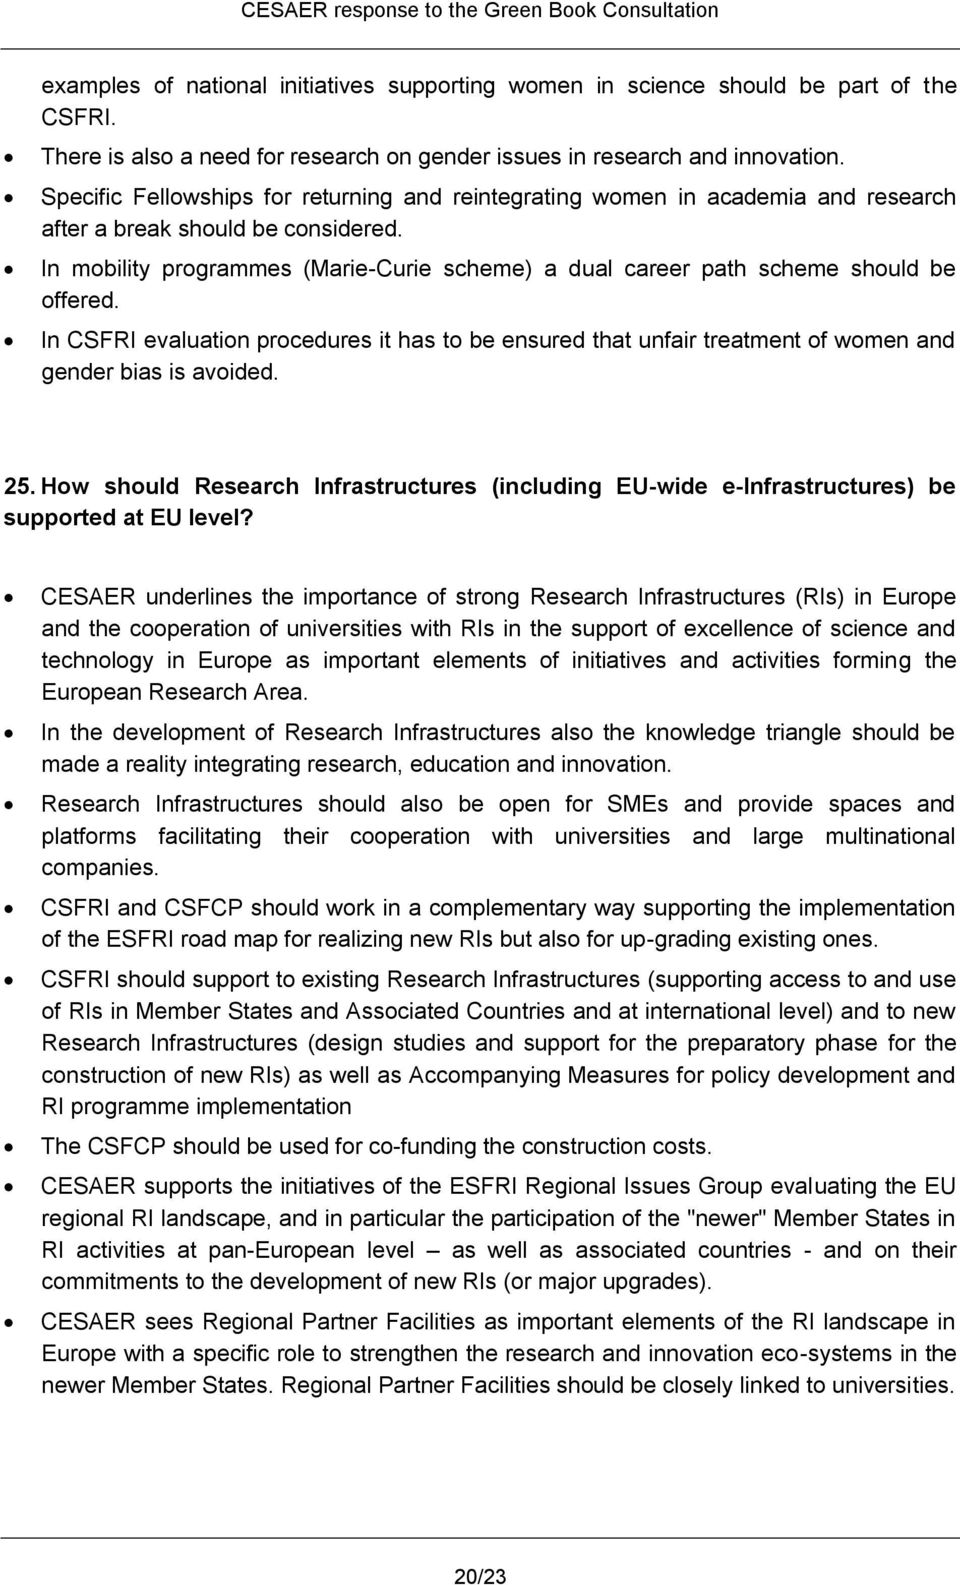 In mobility programmes (Marie-Curie scheme) a dual career path scheme should be offered. In CSFRI evaluation procedures it has to be ensured that unfair treatment of women and gender bias is avoided.